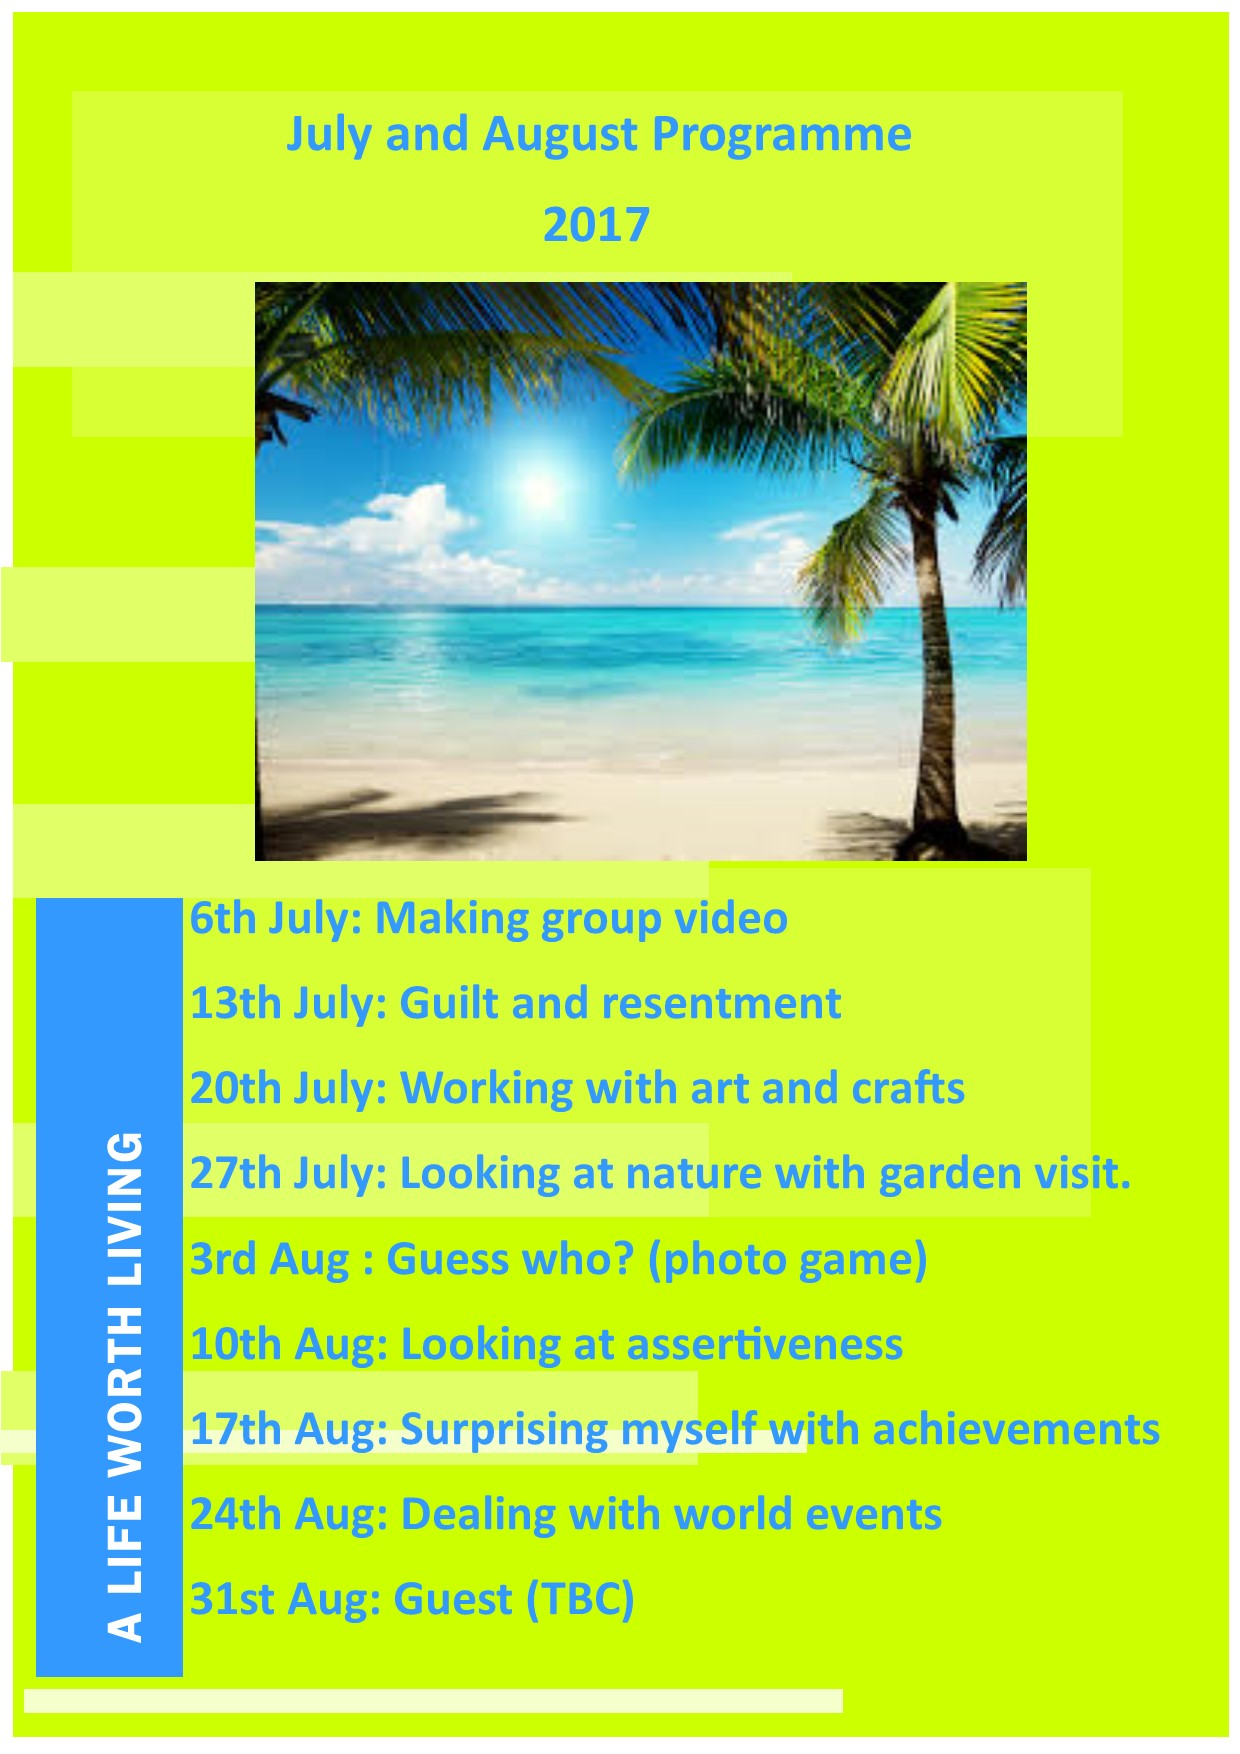 July and August Programme picture